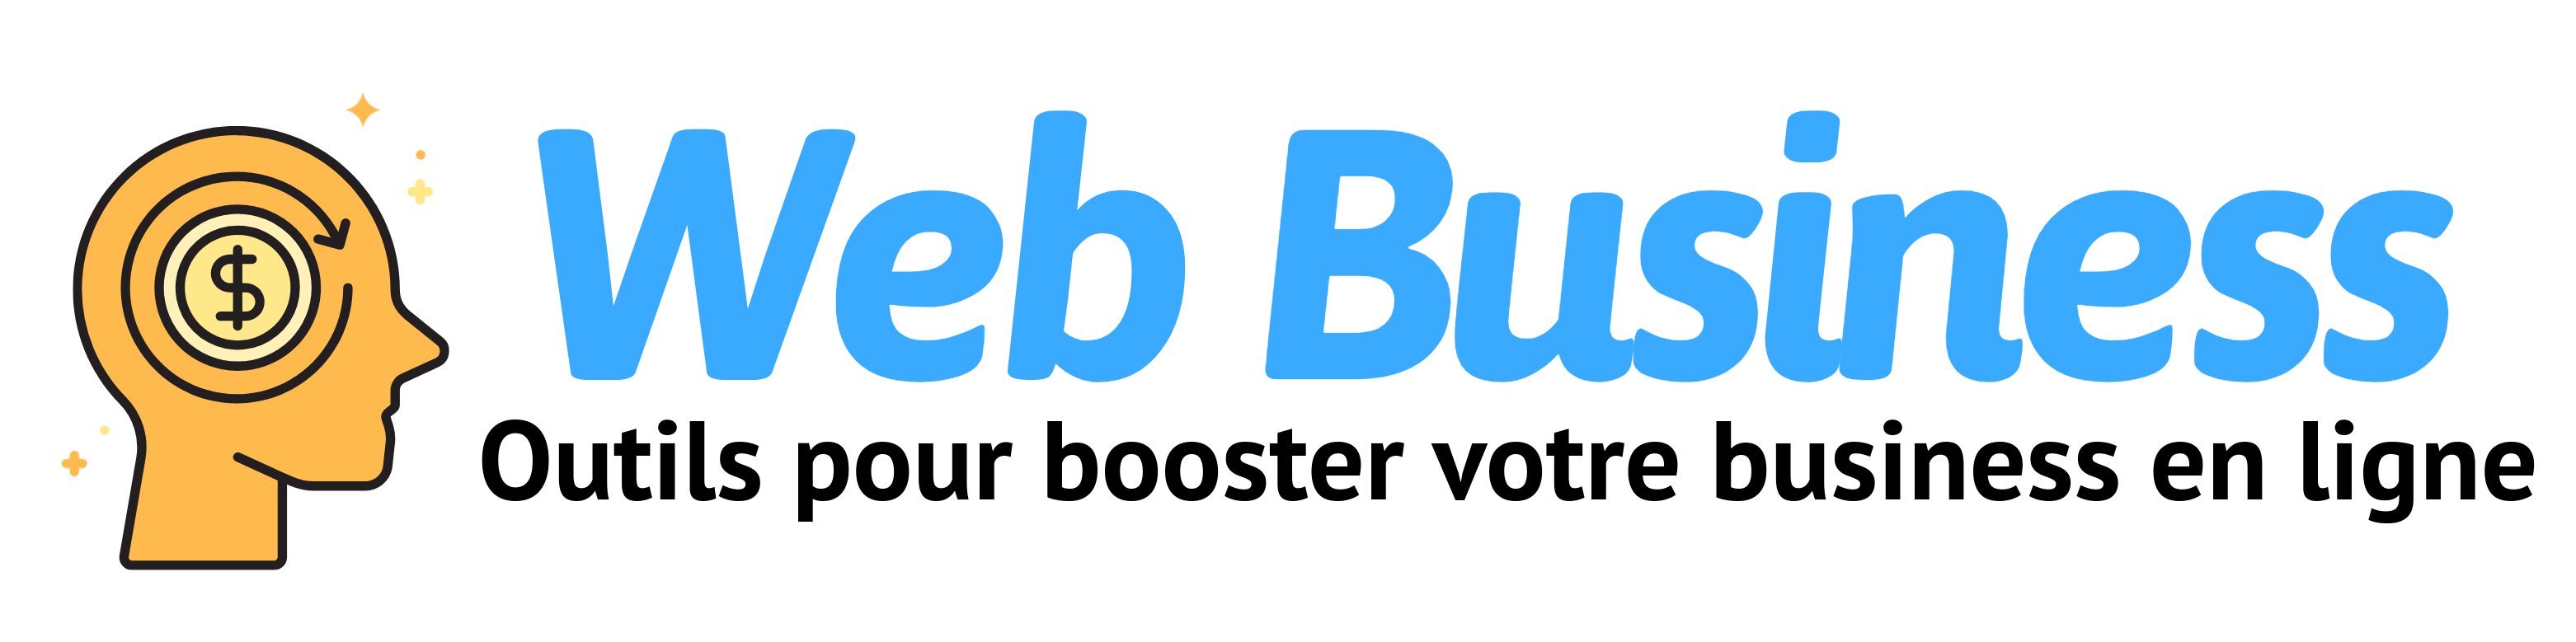 Web Business